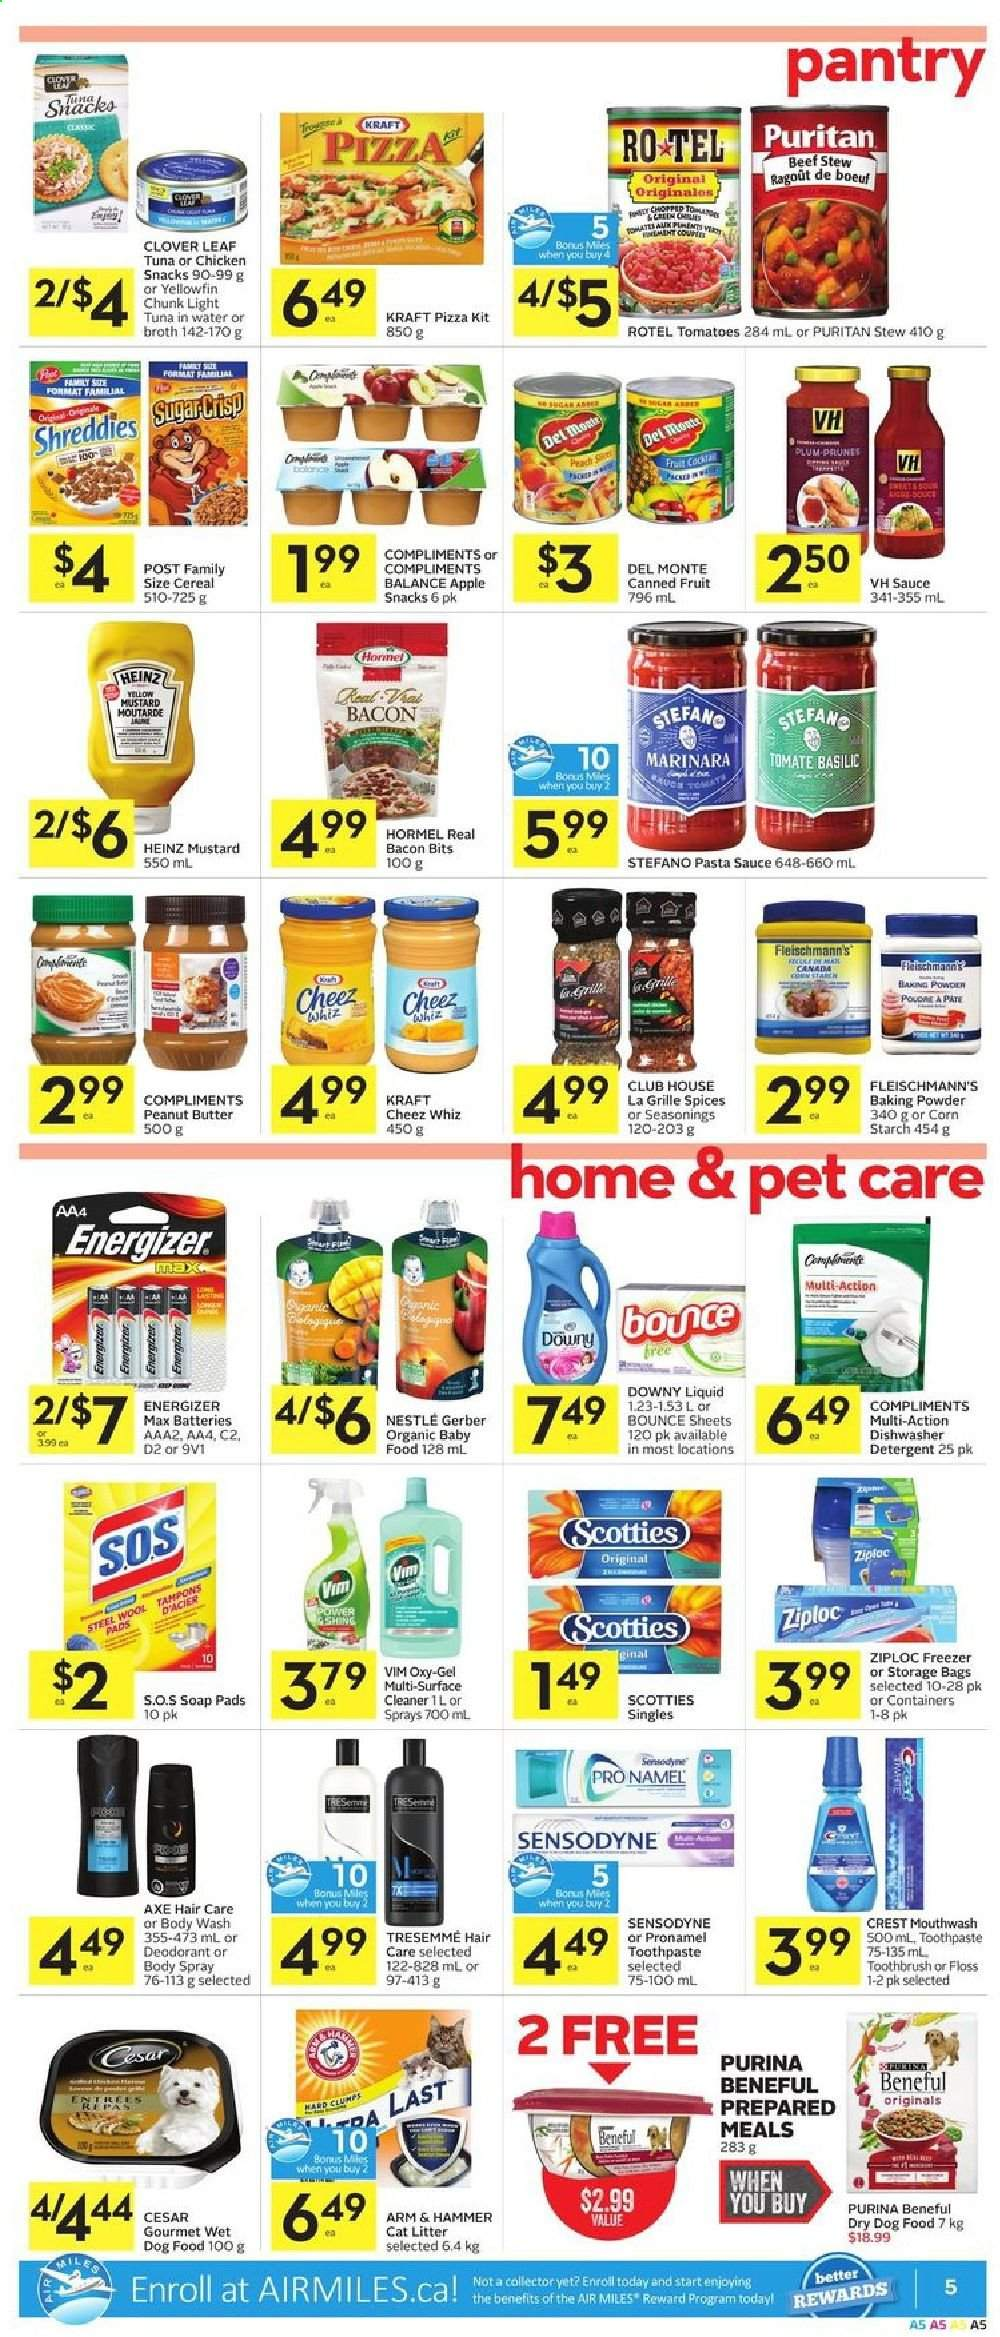 Foodland Flyer  - April 25, 2019 - May 01, 2019. Page 5.